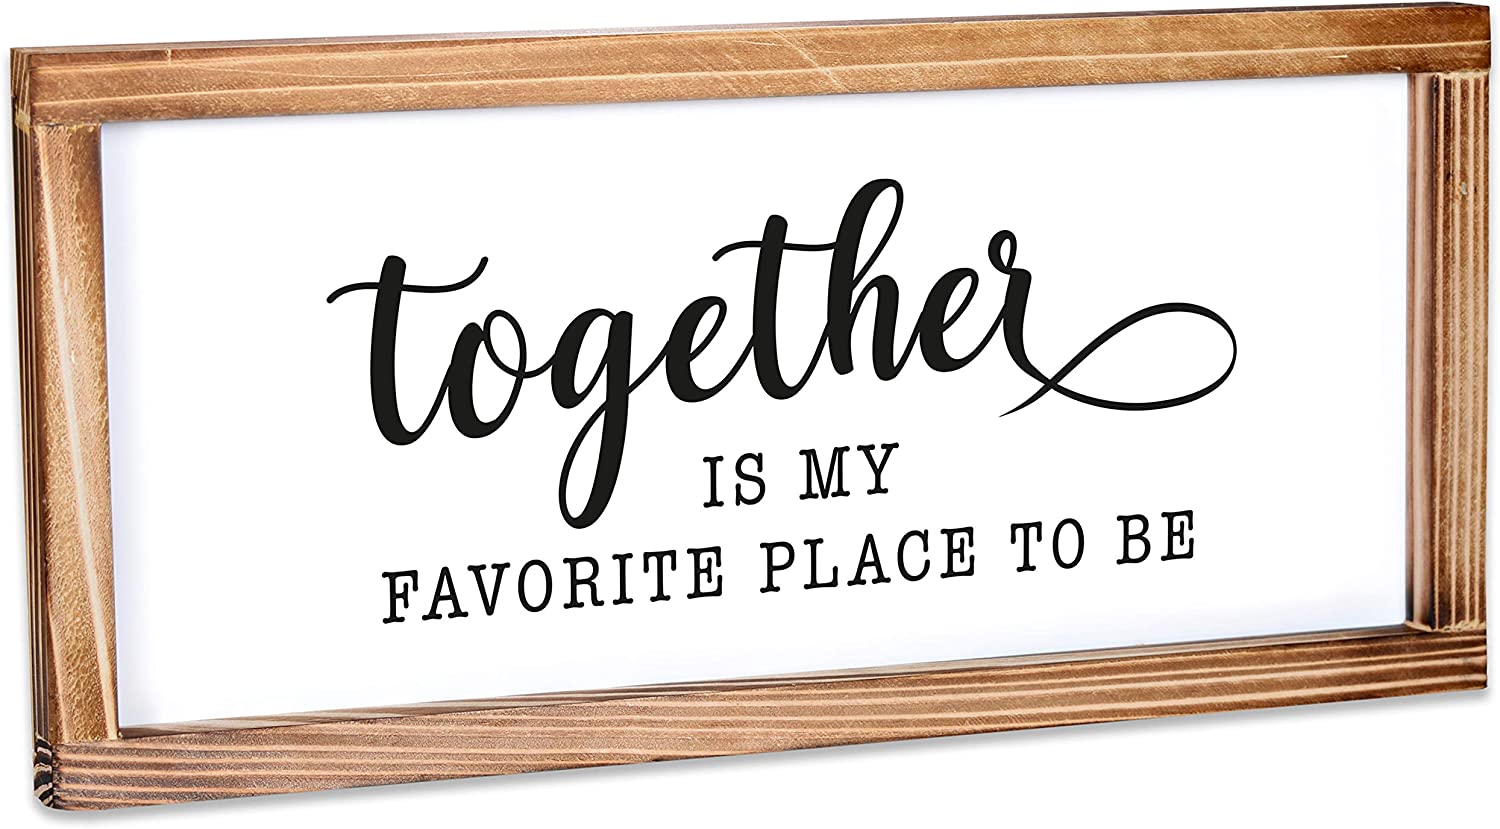 Together is My Favorite Place to be Sign - Rustic Farmhouse Decor for the Home Sign - Wall Decorations for Living Room, Modern Farmhouse Wall Decor, Rustic Home Decor with Solid Wood Frame - 8x17 Inch